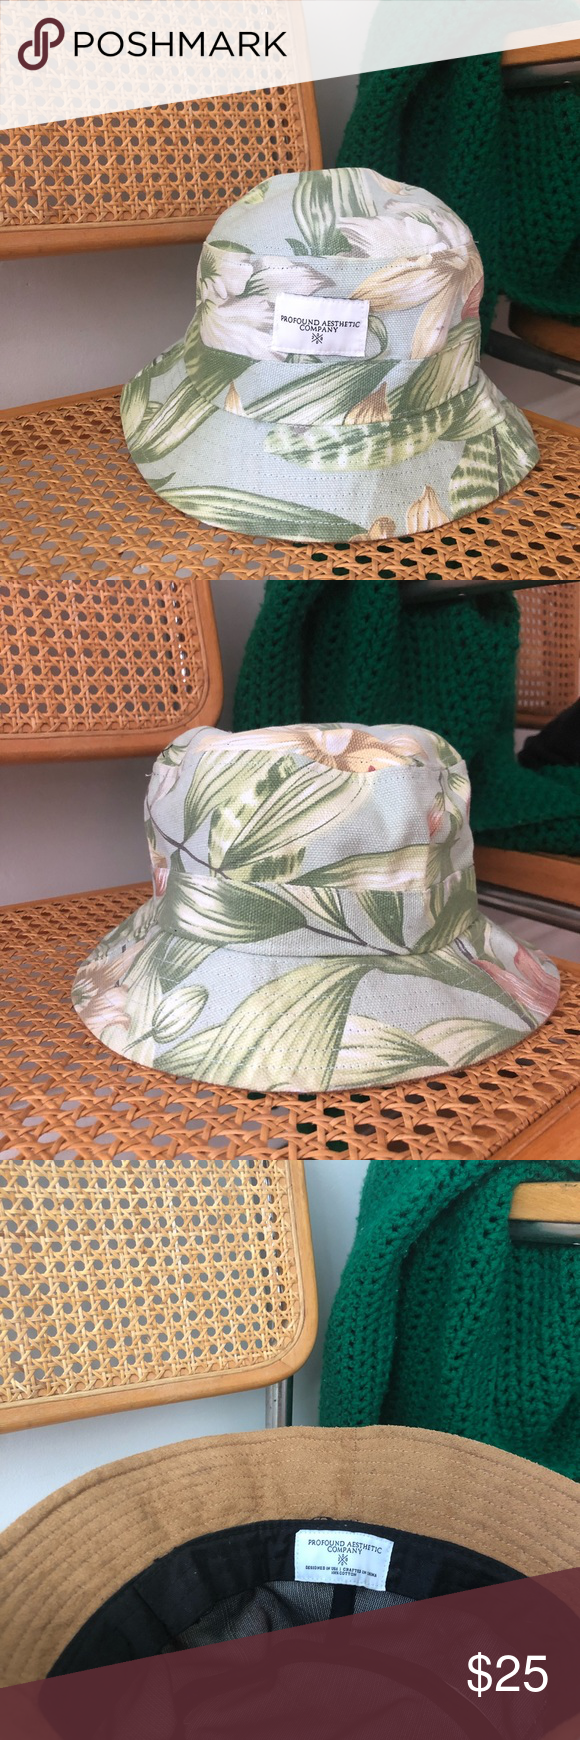 urban outfitters x profound aesthetic bucket hat 🏷 urban outfitters x profound  aesthetic company 🏷 bucket hat 🏷 tropical   floral print 🏷 100% cotton  ... ca75771a6fc6